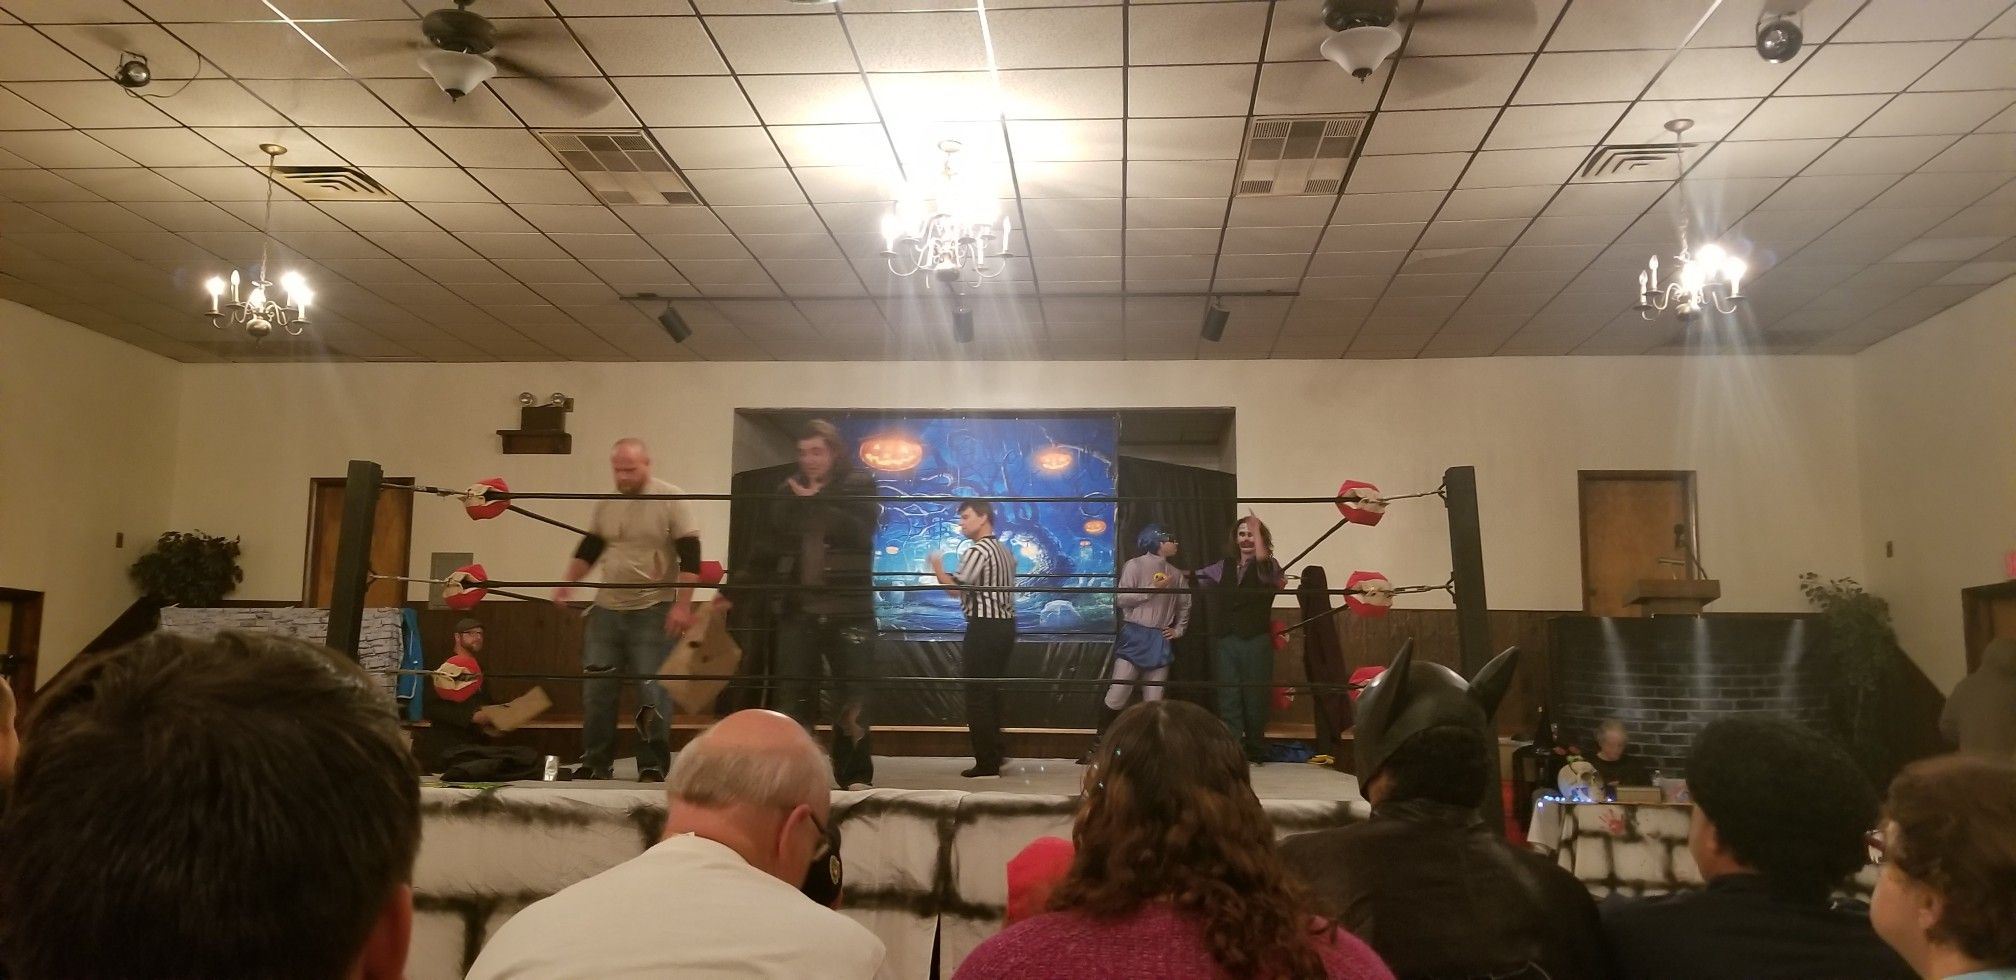 The Hollywood Hooligans Vs The Homeless Heroes United Wrestling Coalition Oct 13 2018 Heroes United The Unit Wrestling